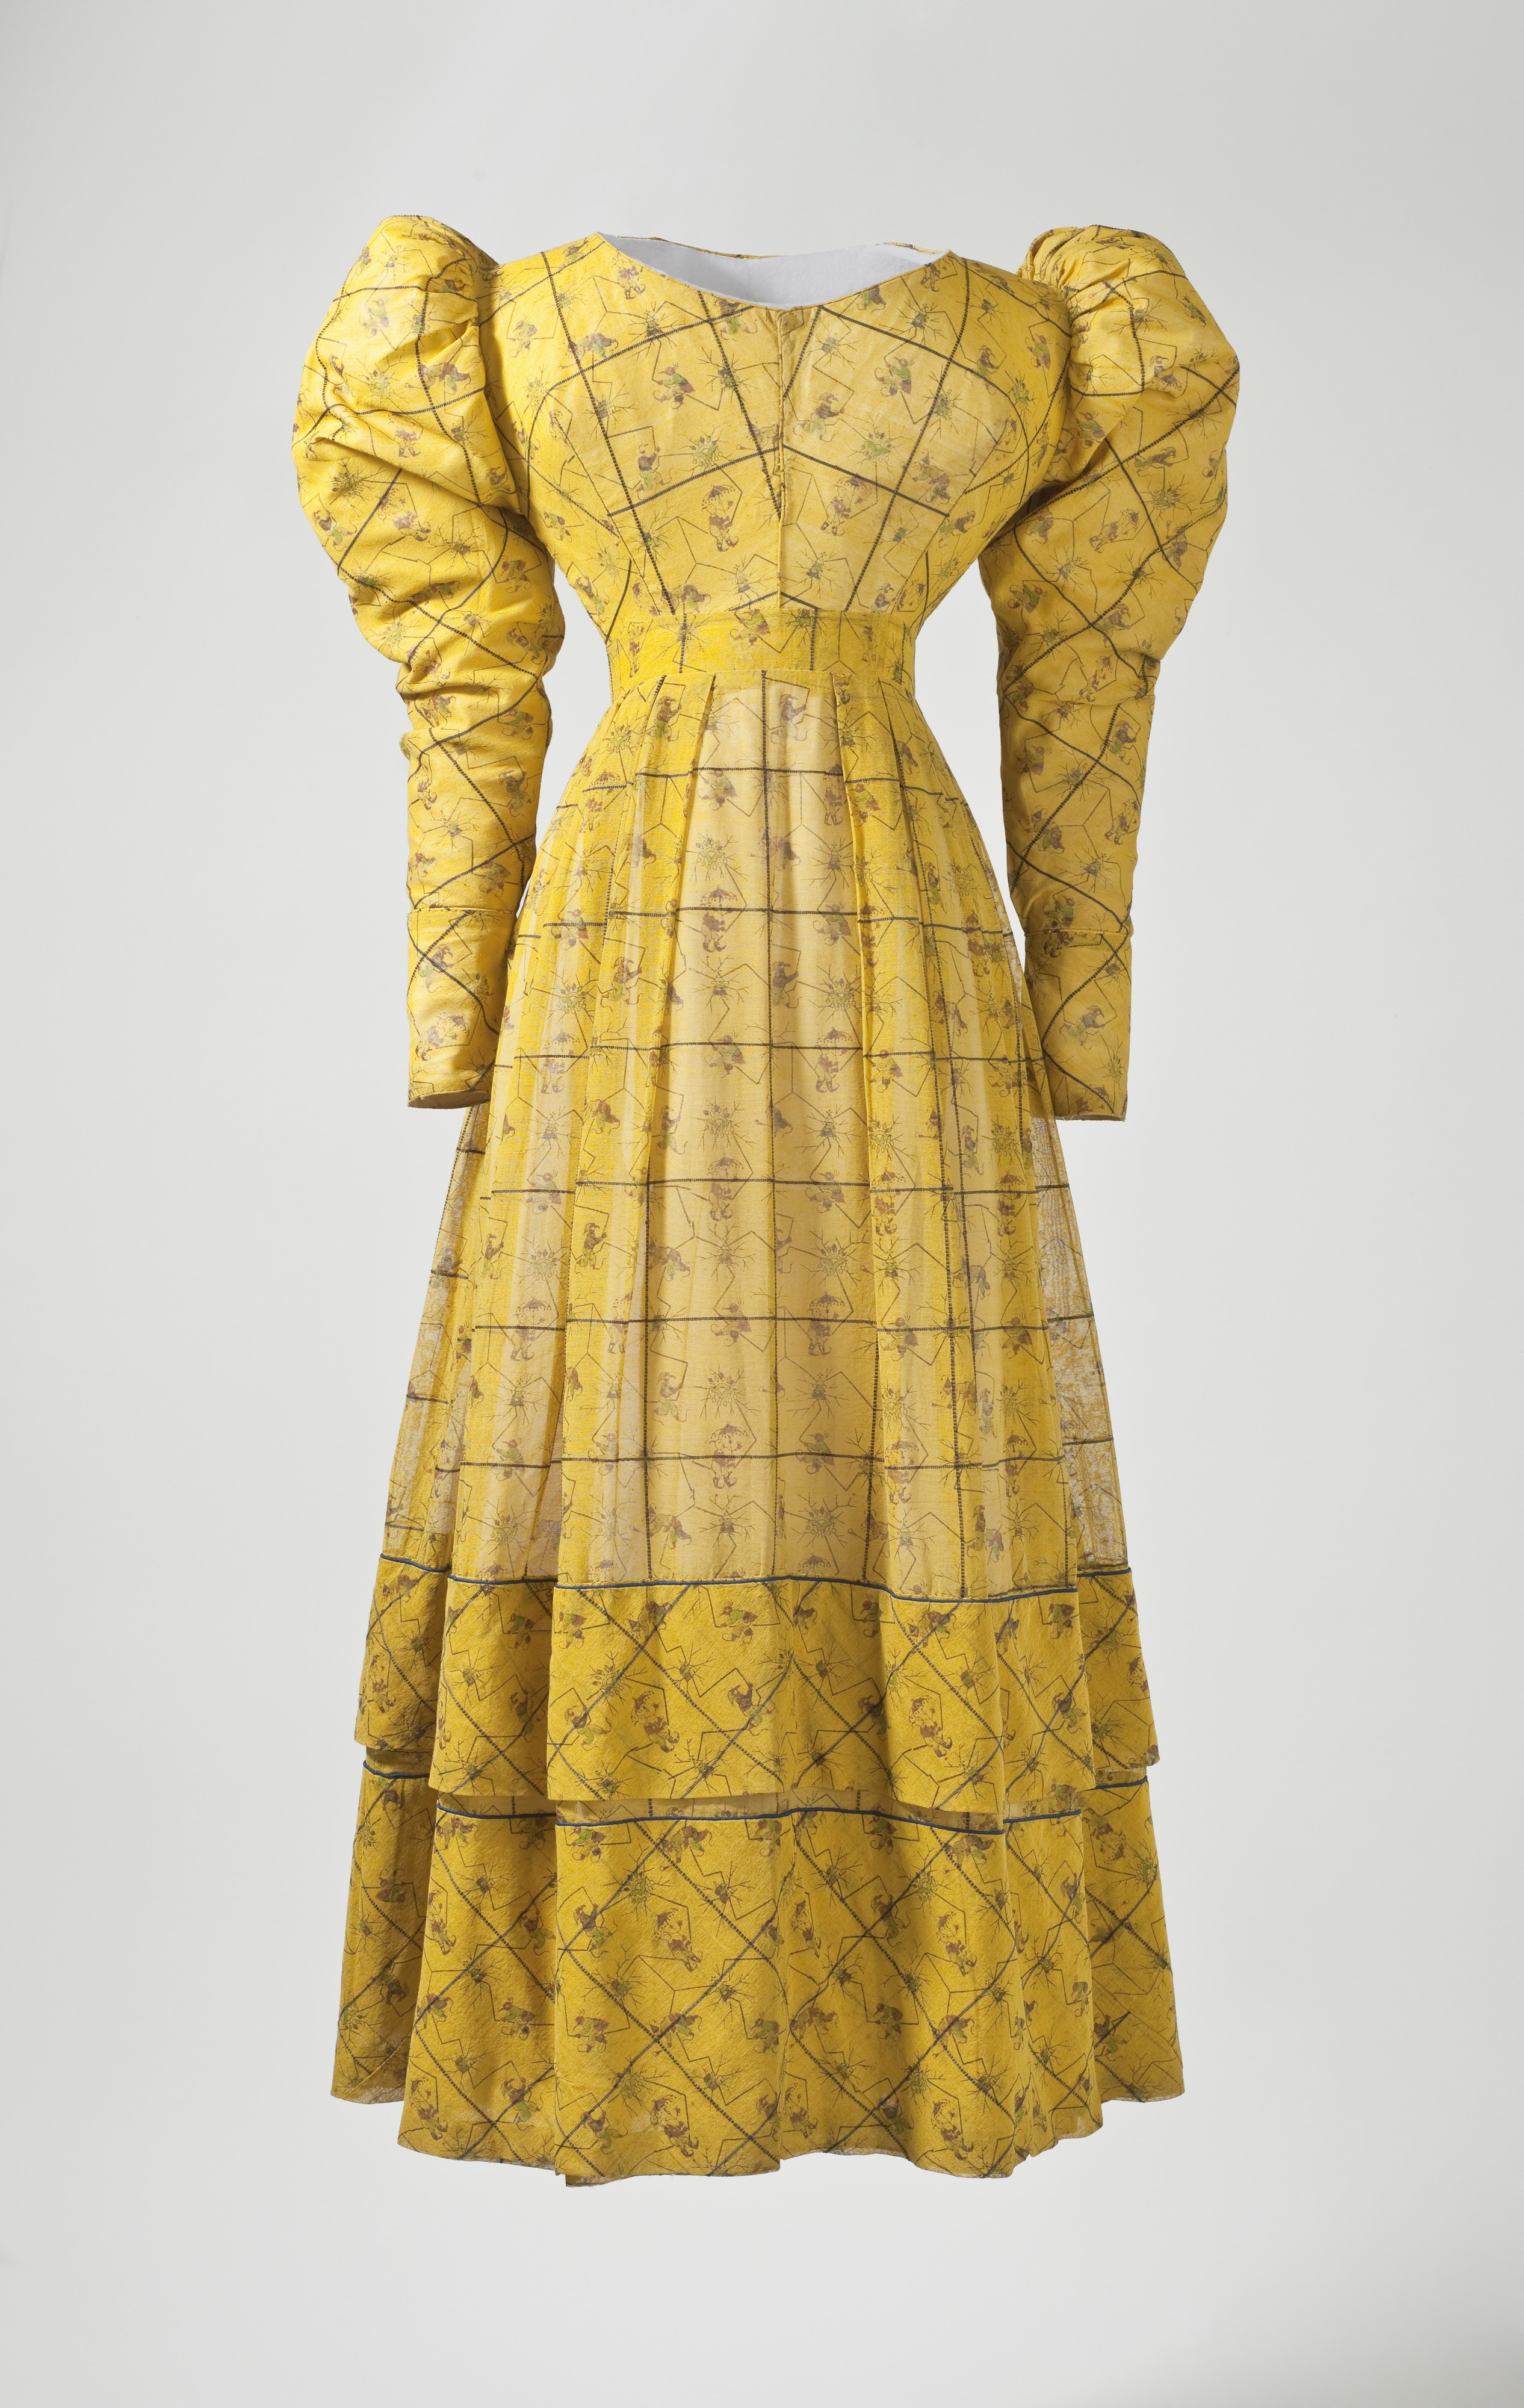 Woman's yellow print dress c. 1827